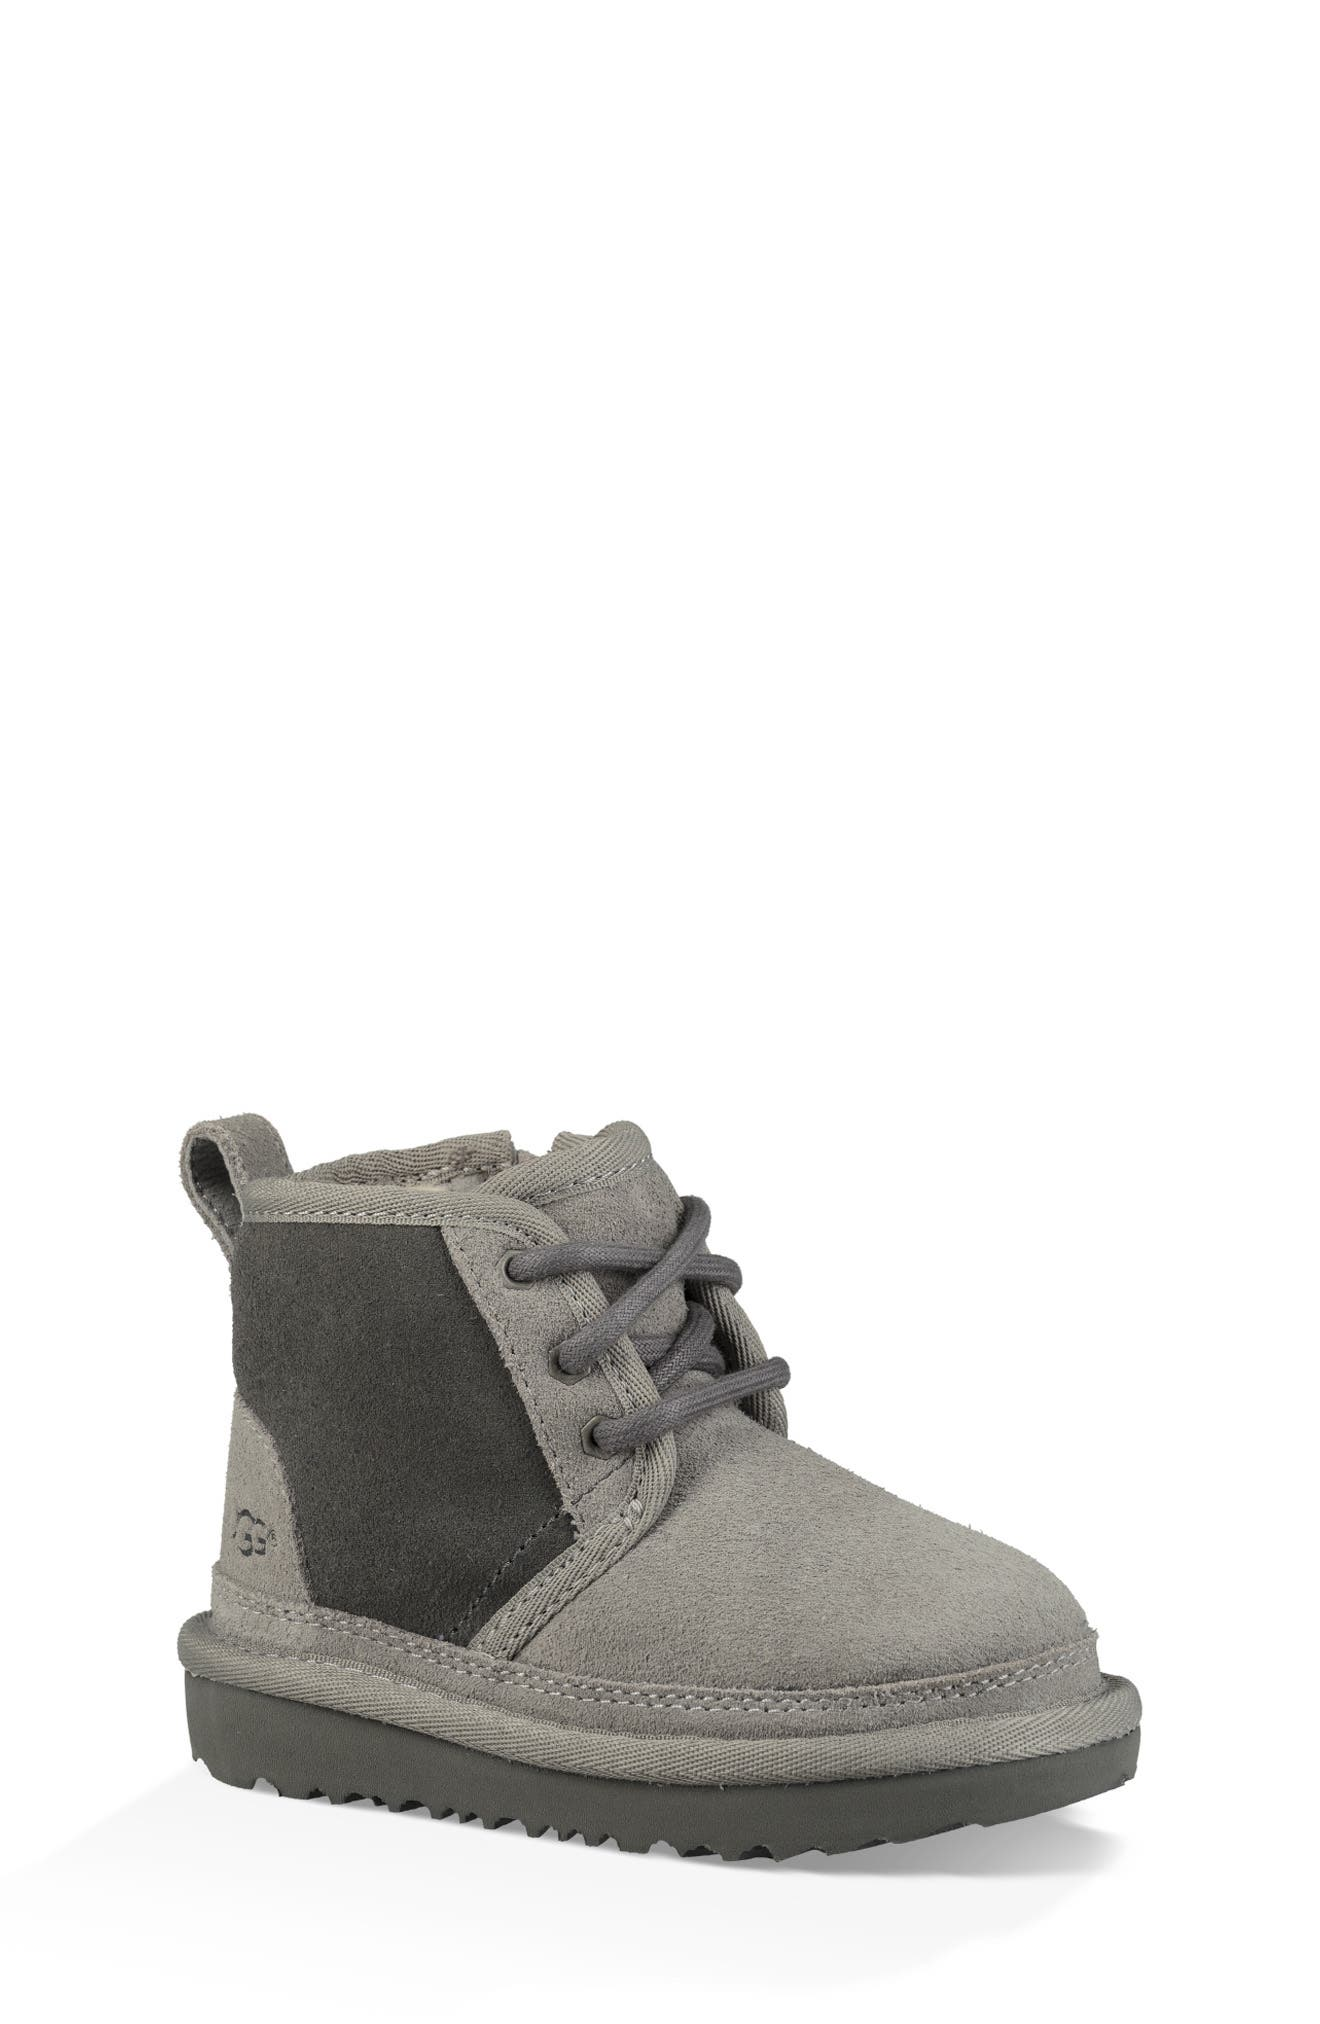 UGG® Neumel II Water Resistant Chukka Boot (Walker, Toddler, Little Kid & Big Kid)